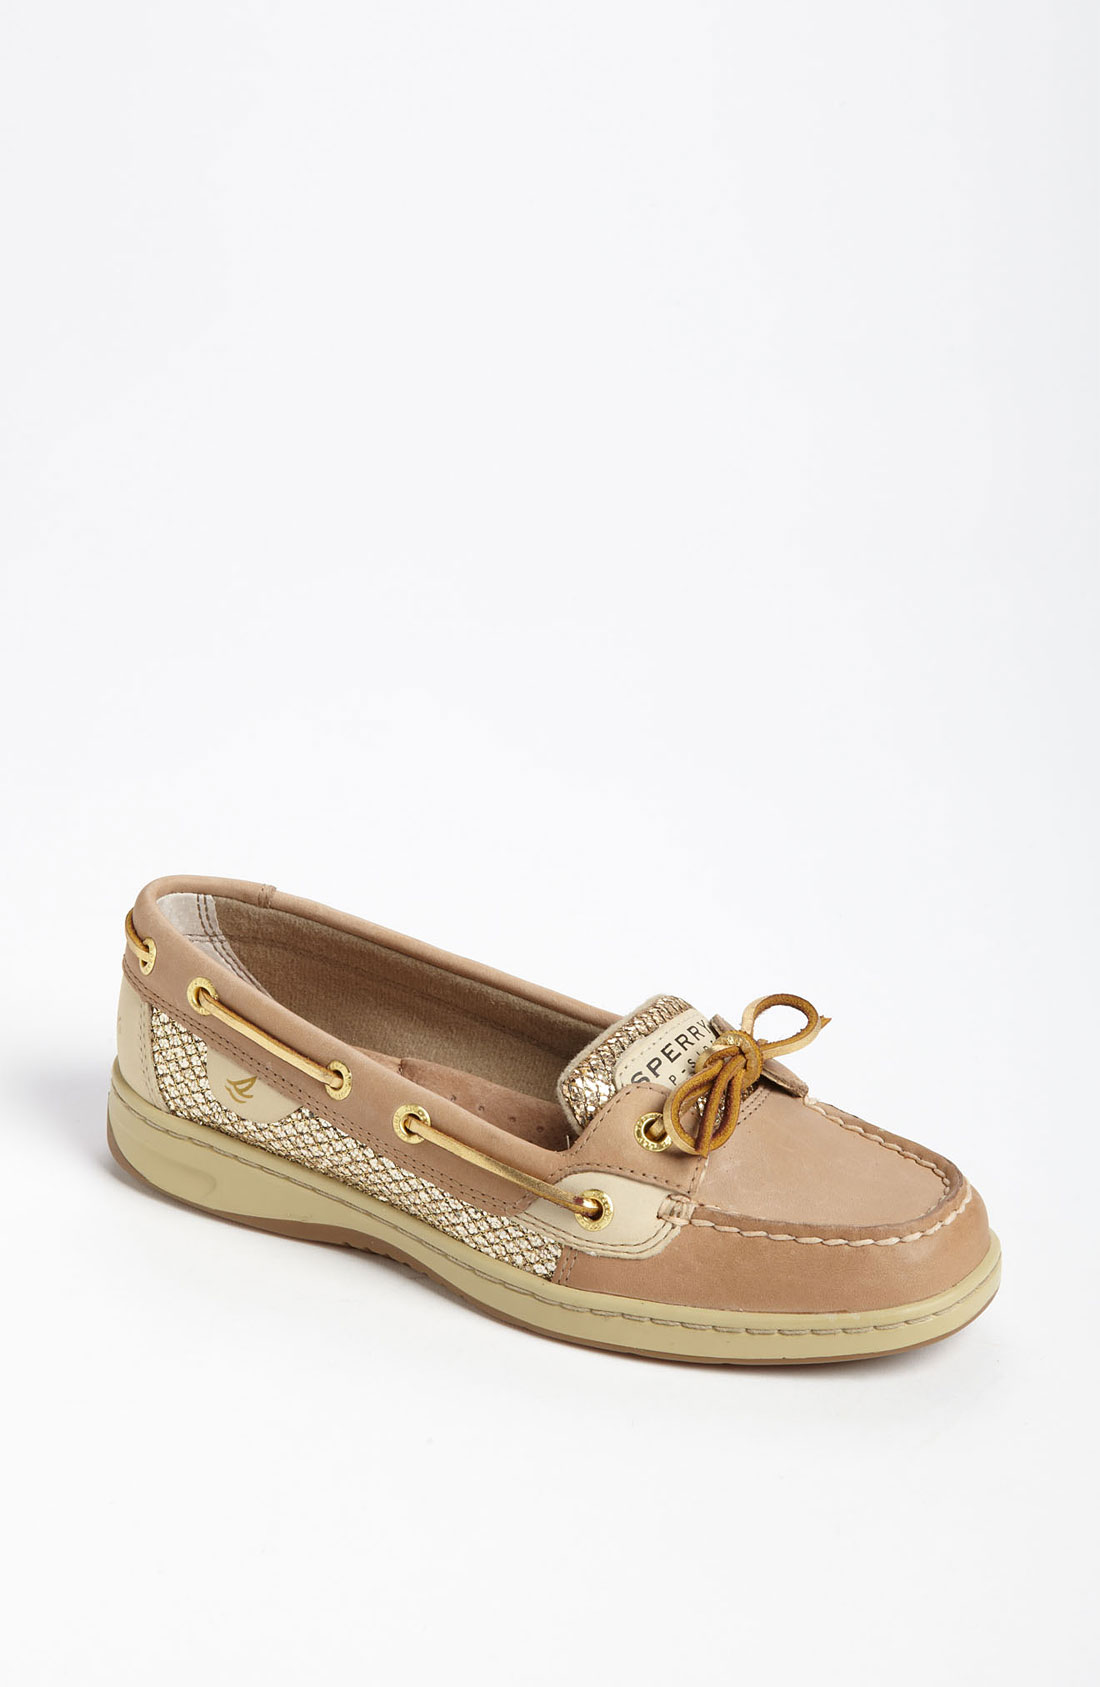 Lyst sperry top sider angel fish boat shoe in metallic for Best boat shoes for fishing